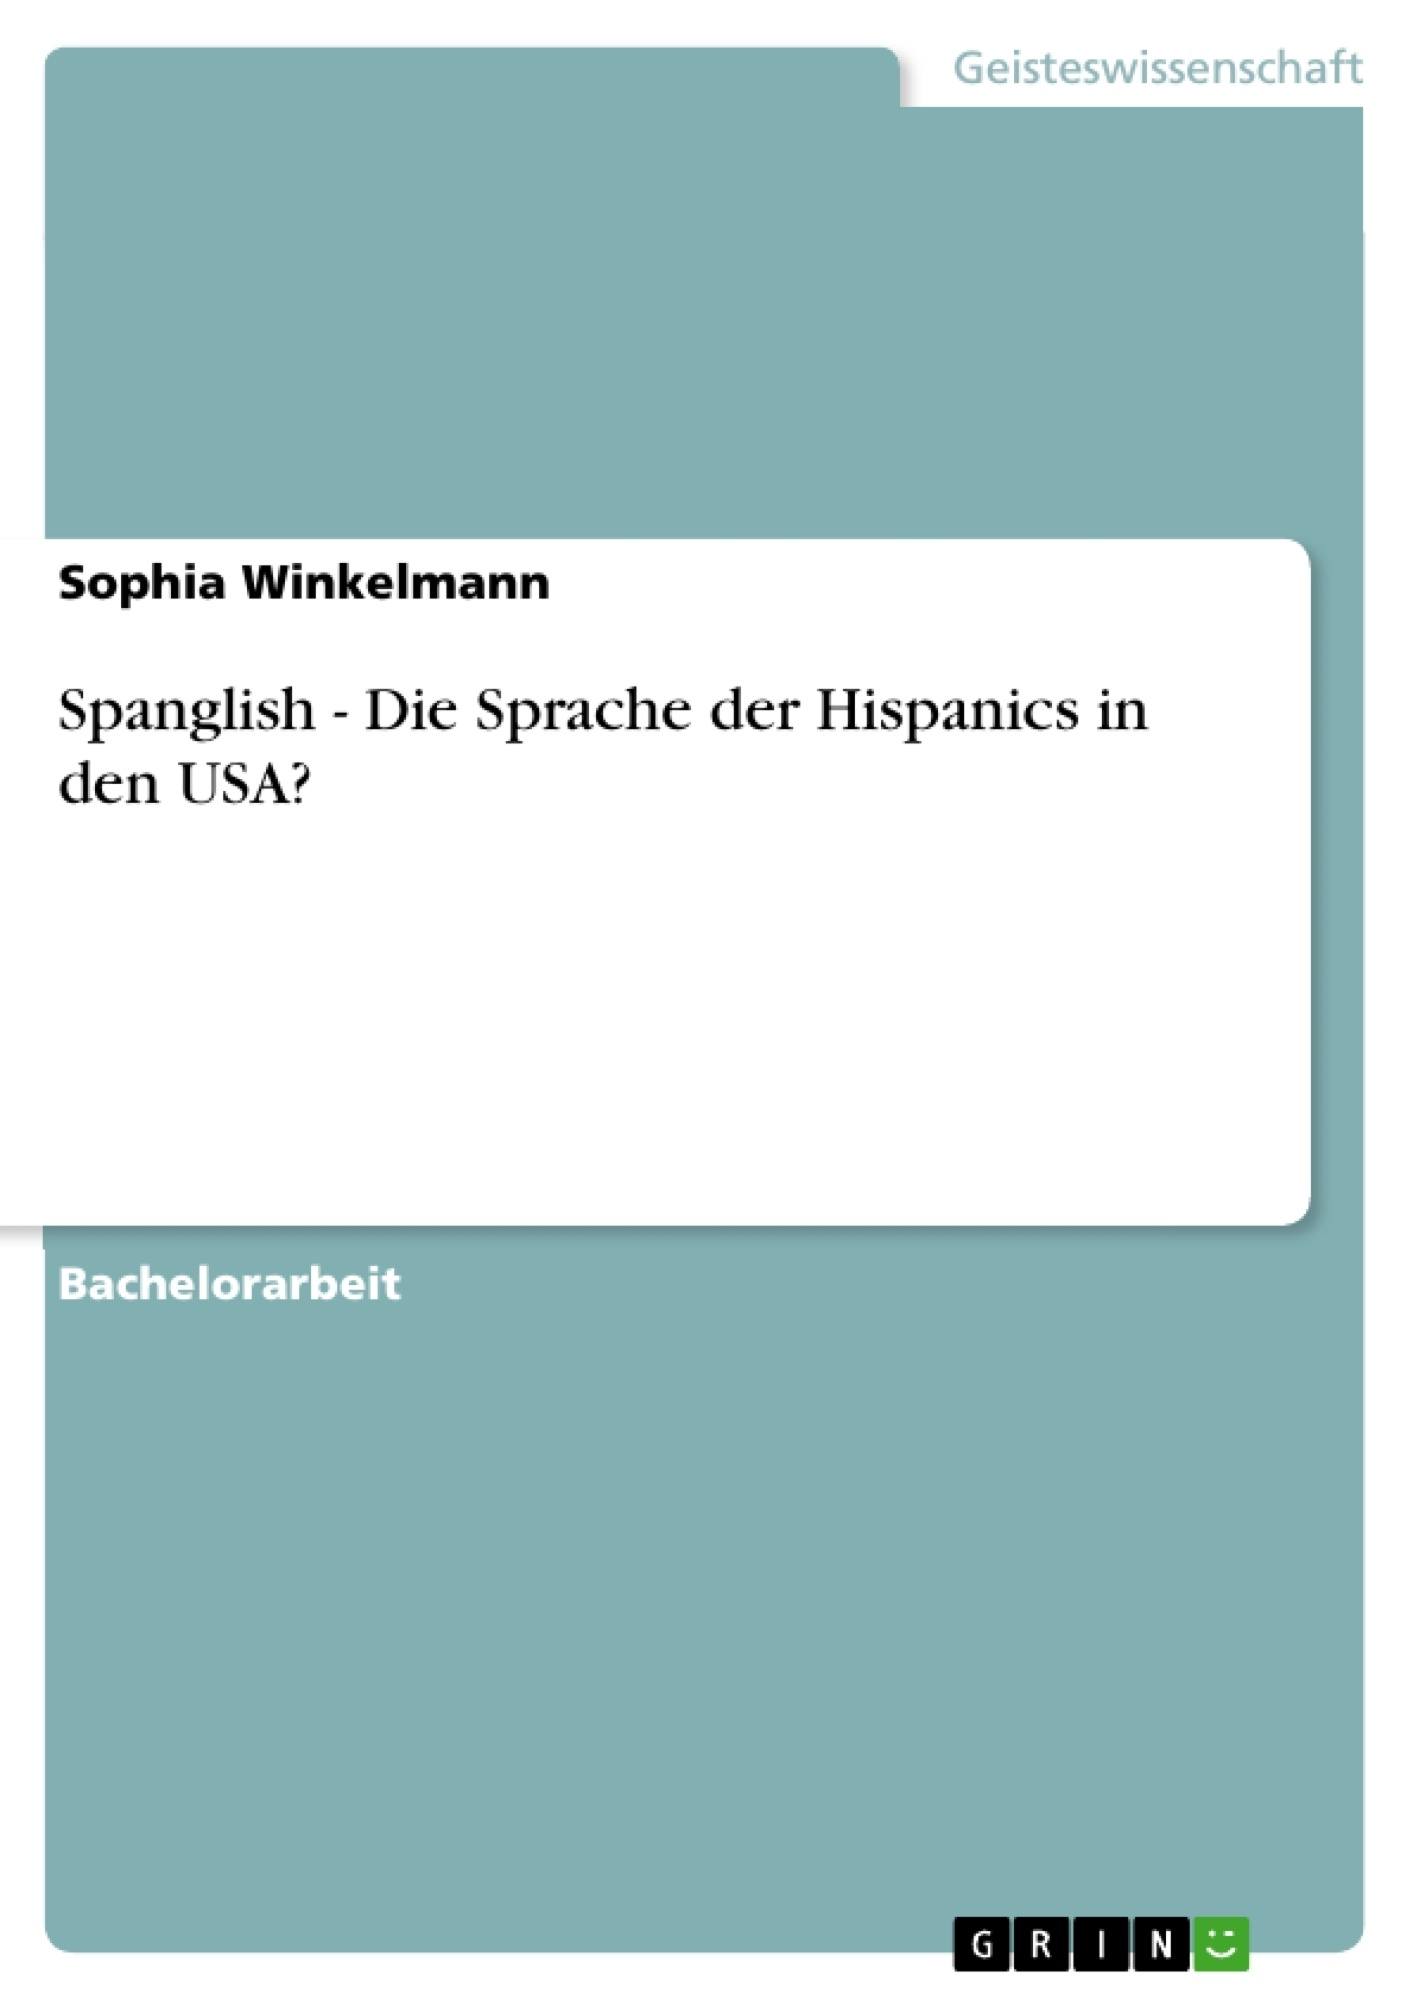 Titel: Spanglish - Die Sprache der Hispanics in den USA?